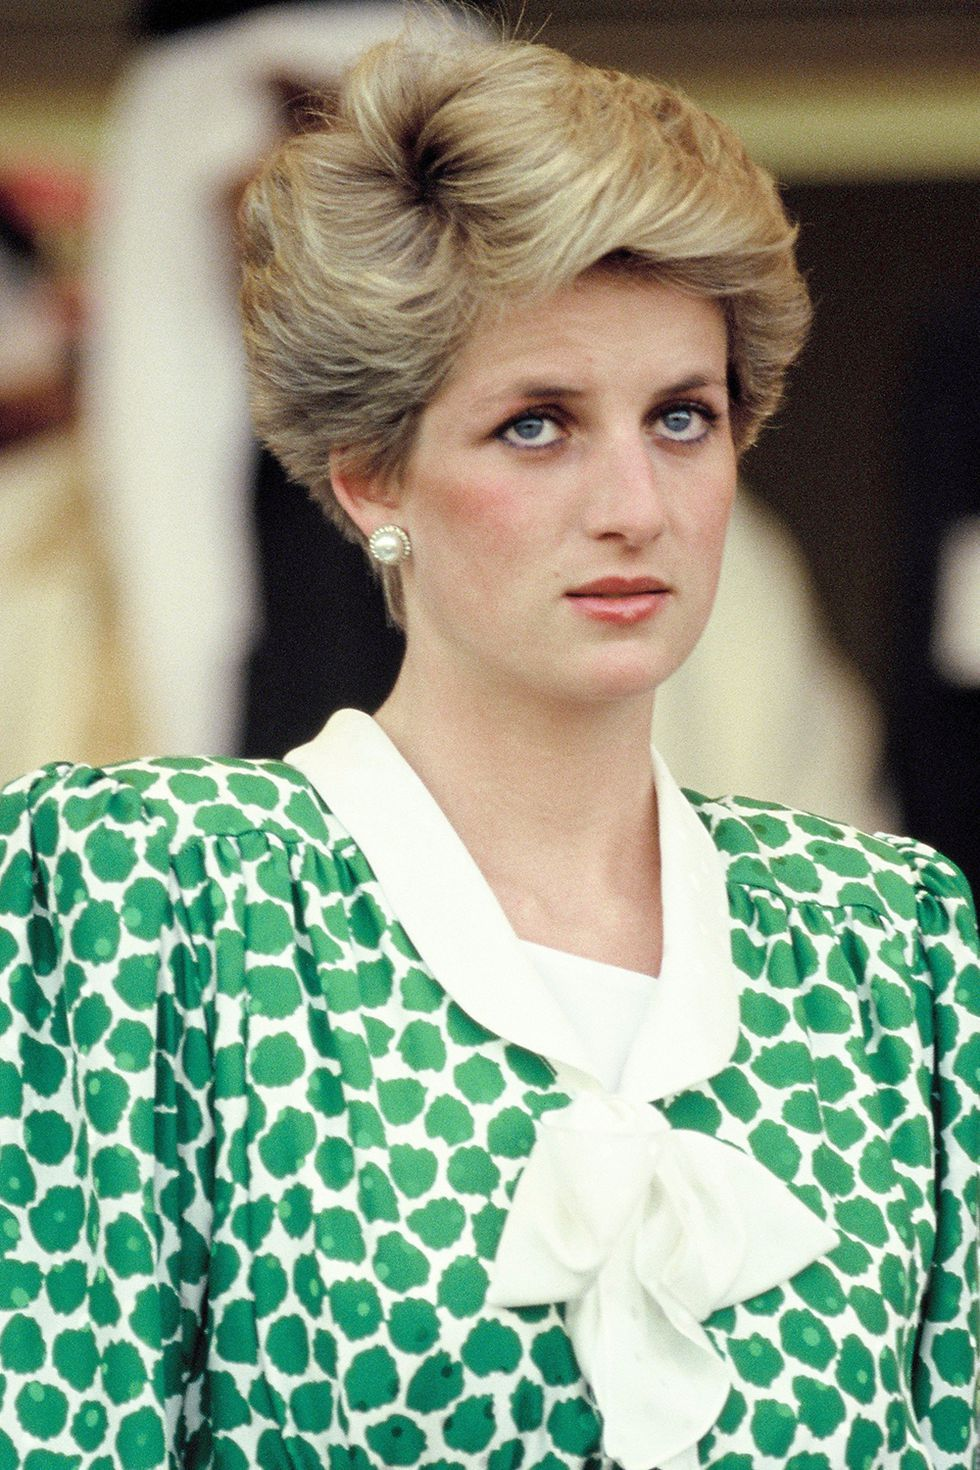 50 of princess diana's best hairstyles | short pixie, diana and